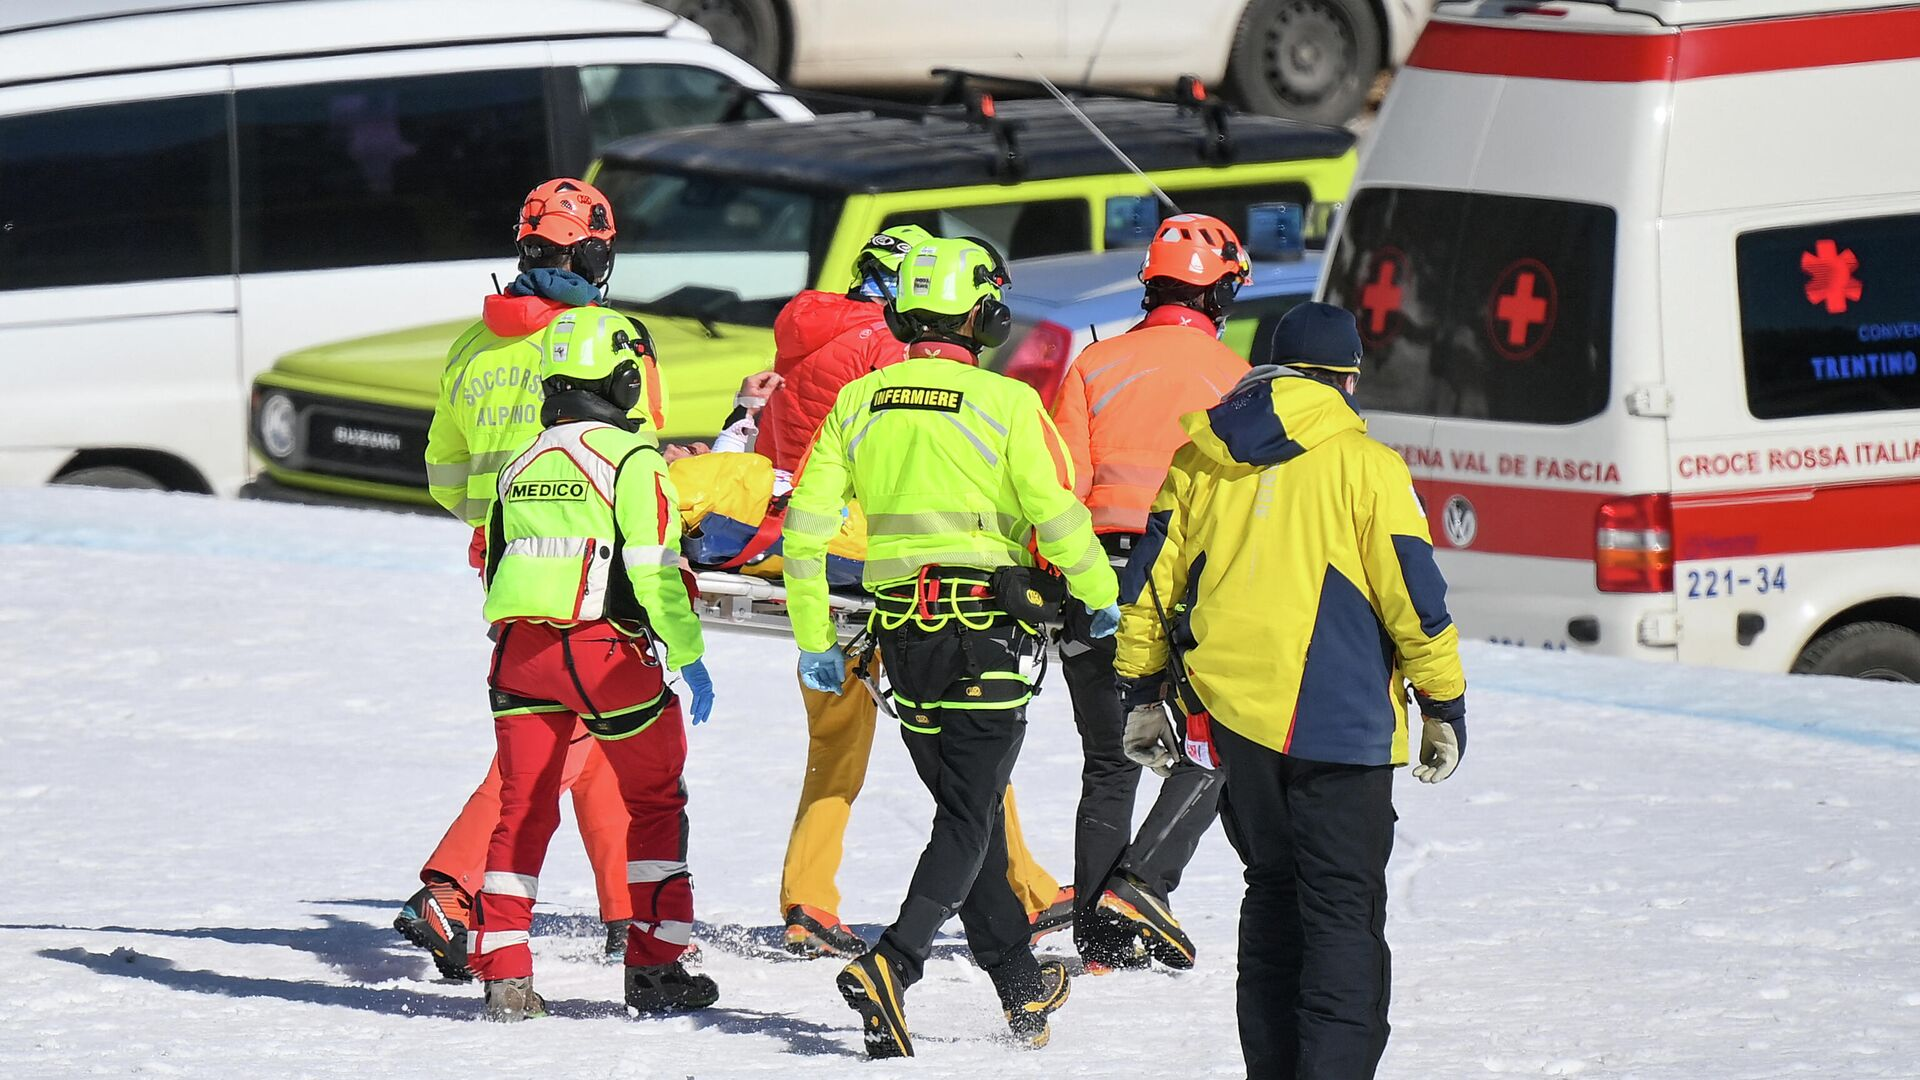 Norway's Kajsa Vickhoff Lie is evacuated by a medical team after her injury during the FIS Alpine Ski Women's World Cup Super G event, in Val di Fassa, northern Italy Alps, on February 28, 2021. (Photo by Marco BERTORELLO / AFP) - РИА Новости, 1920, 28.02.2021